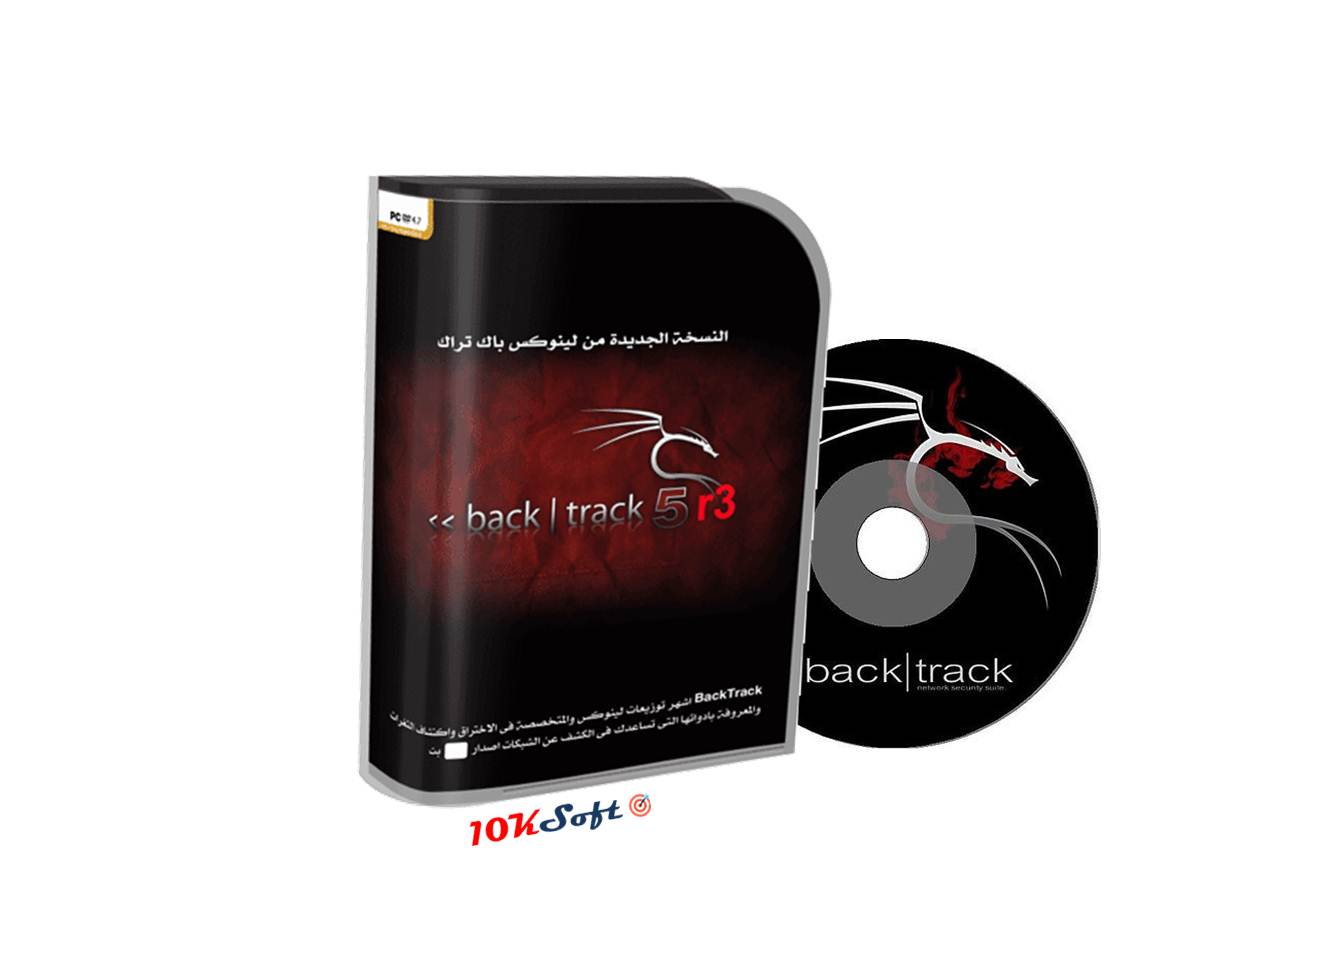 BackTrack 5 R3 GNOME Free Download